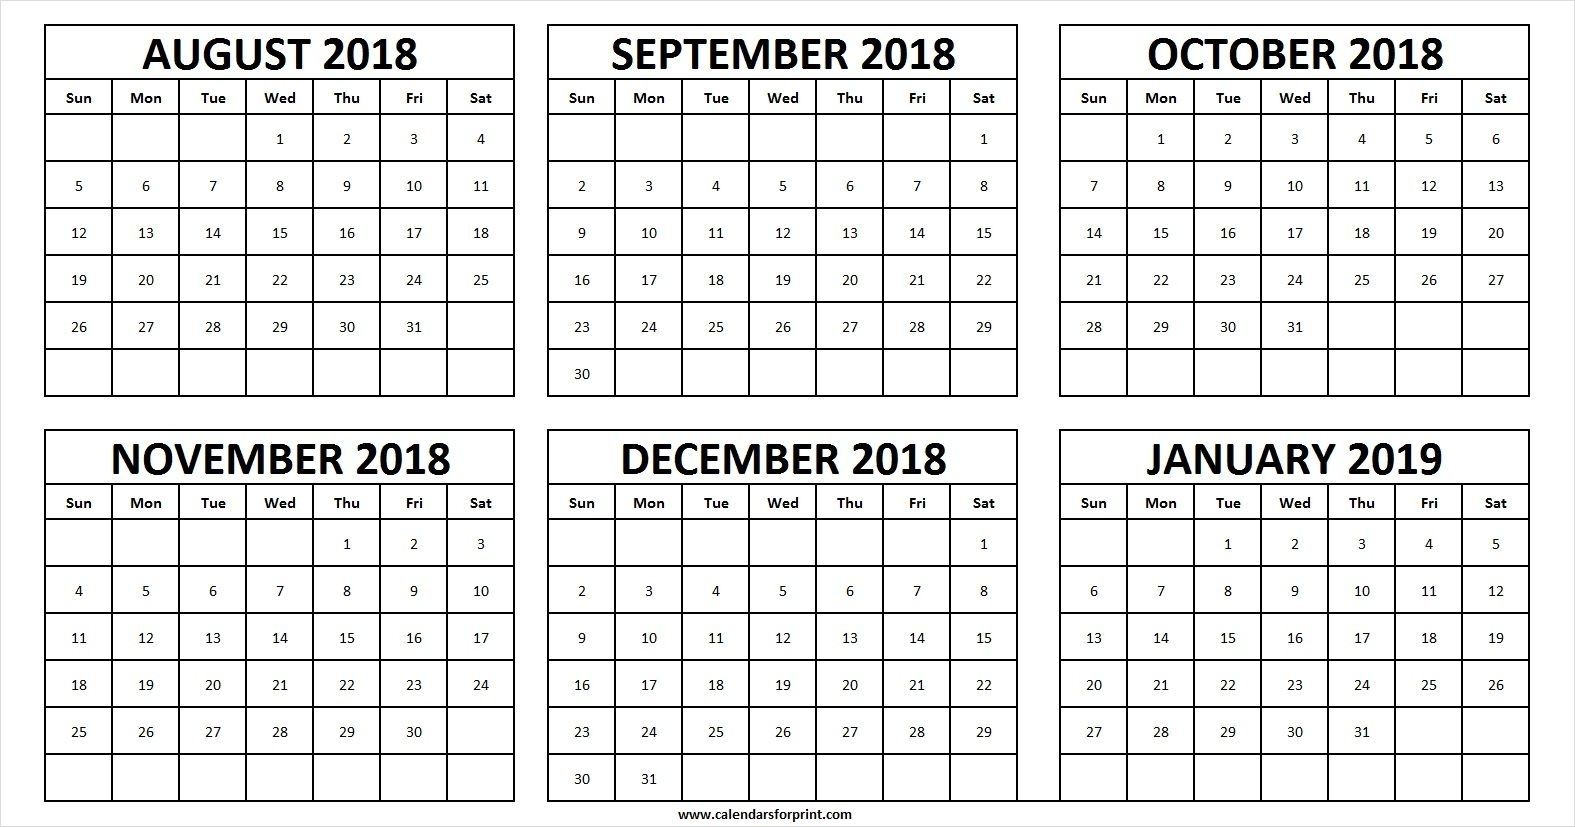 Get August Through December 2019 Calander ⋆ The Best